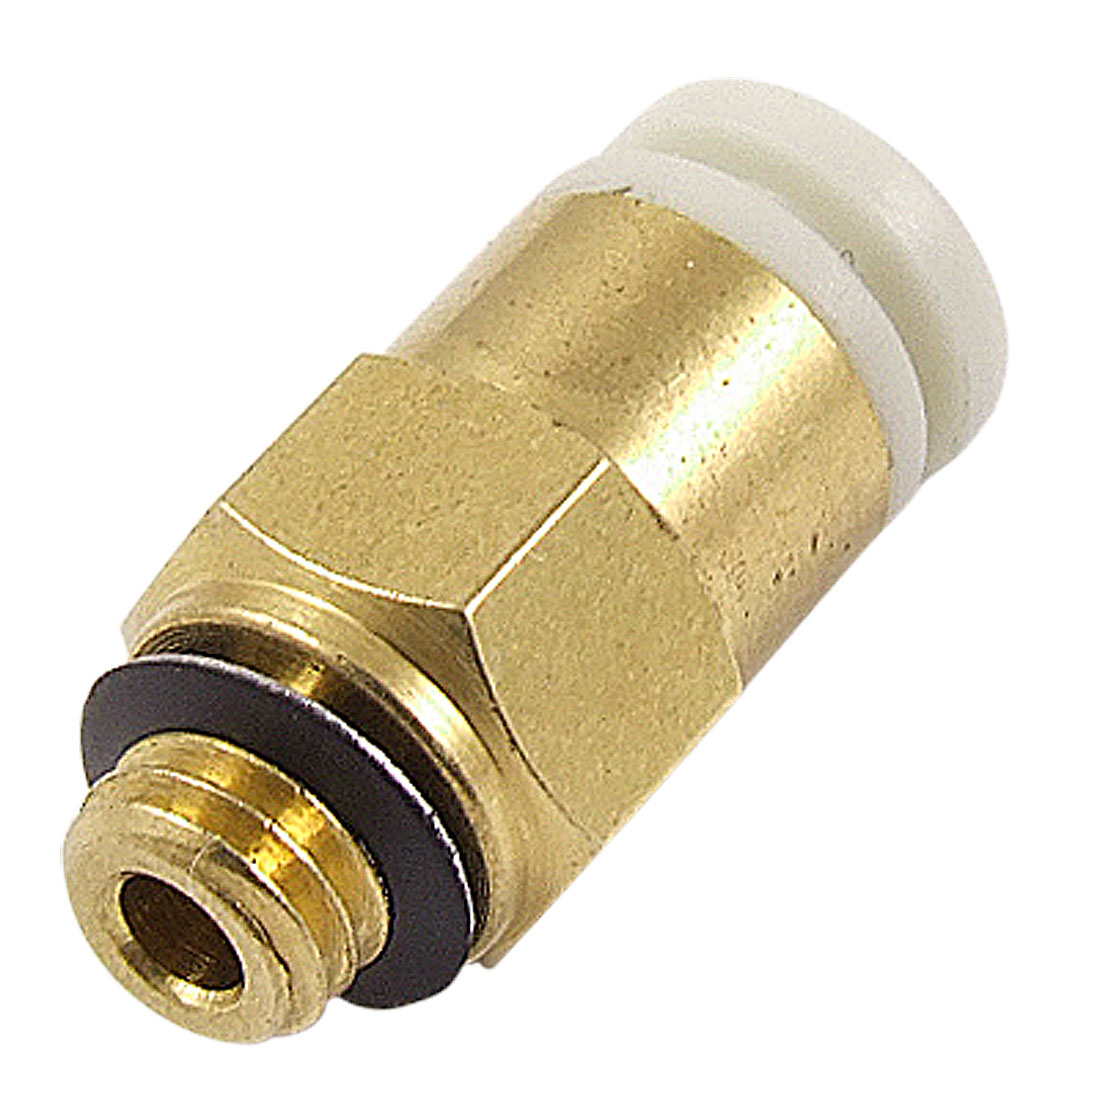 KJH04-M5 4mm Tube 5mm Male Thread Quick Coupling Straight Connector Pneumatic Fitting